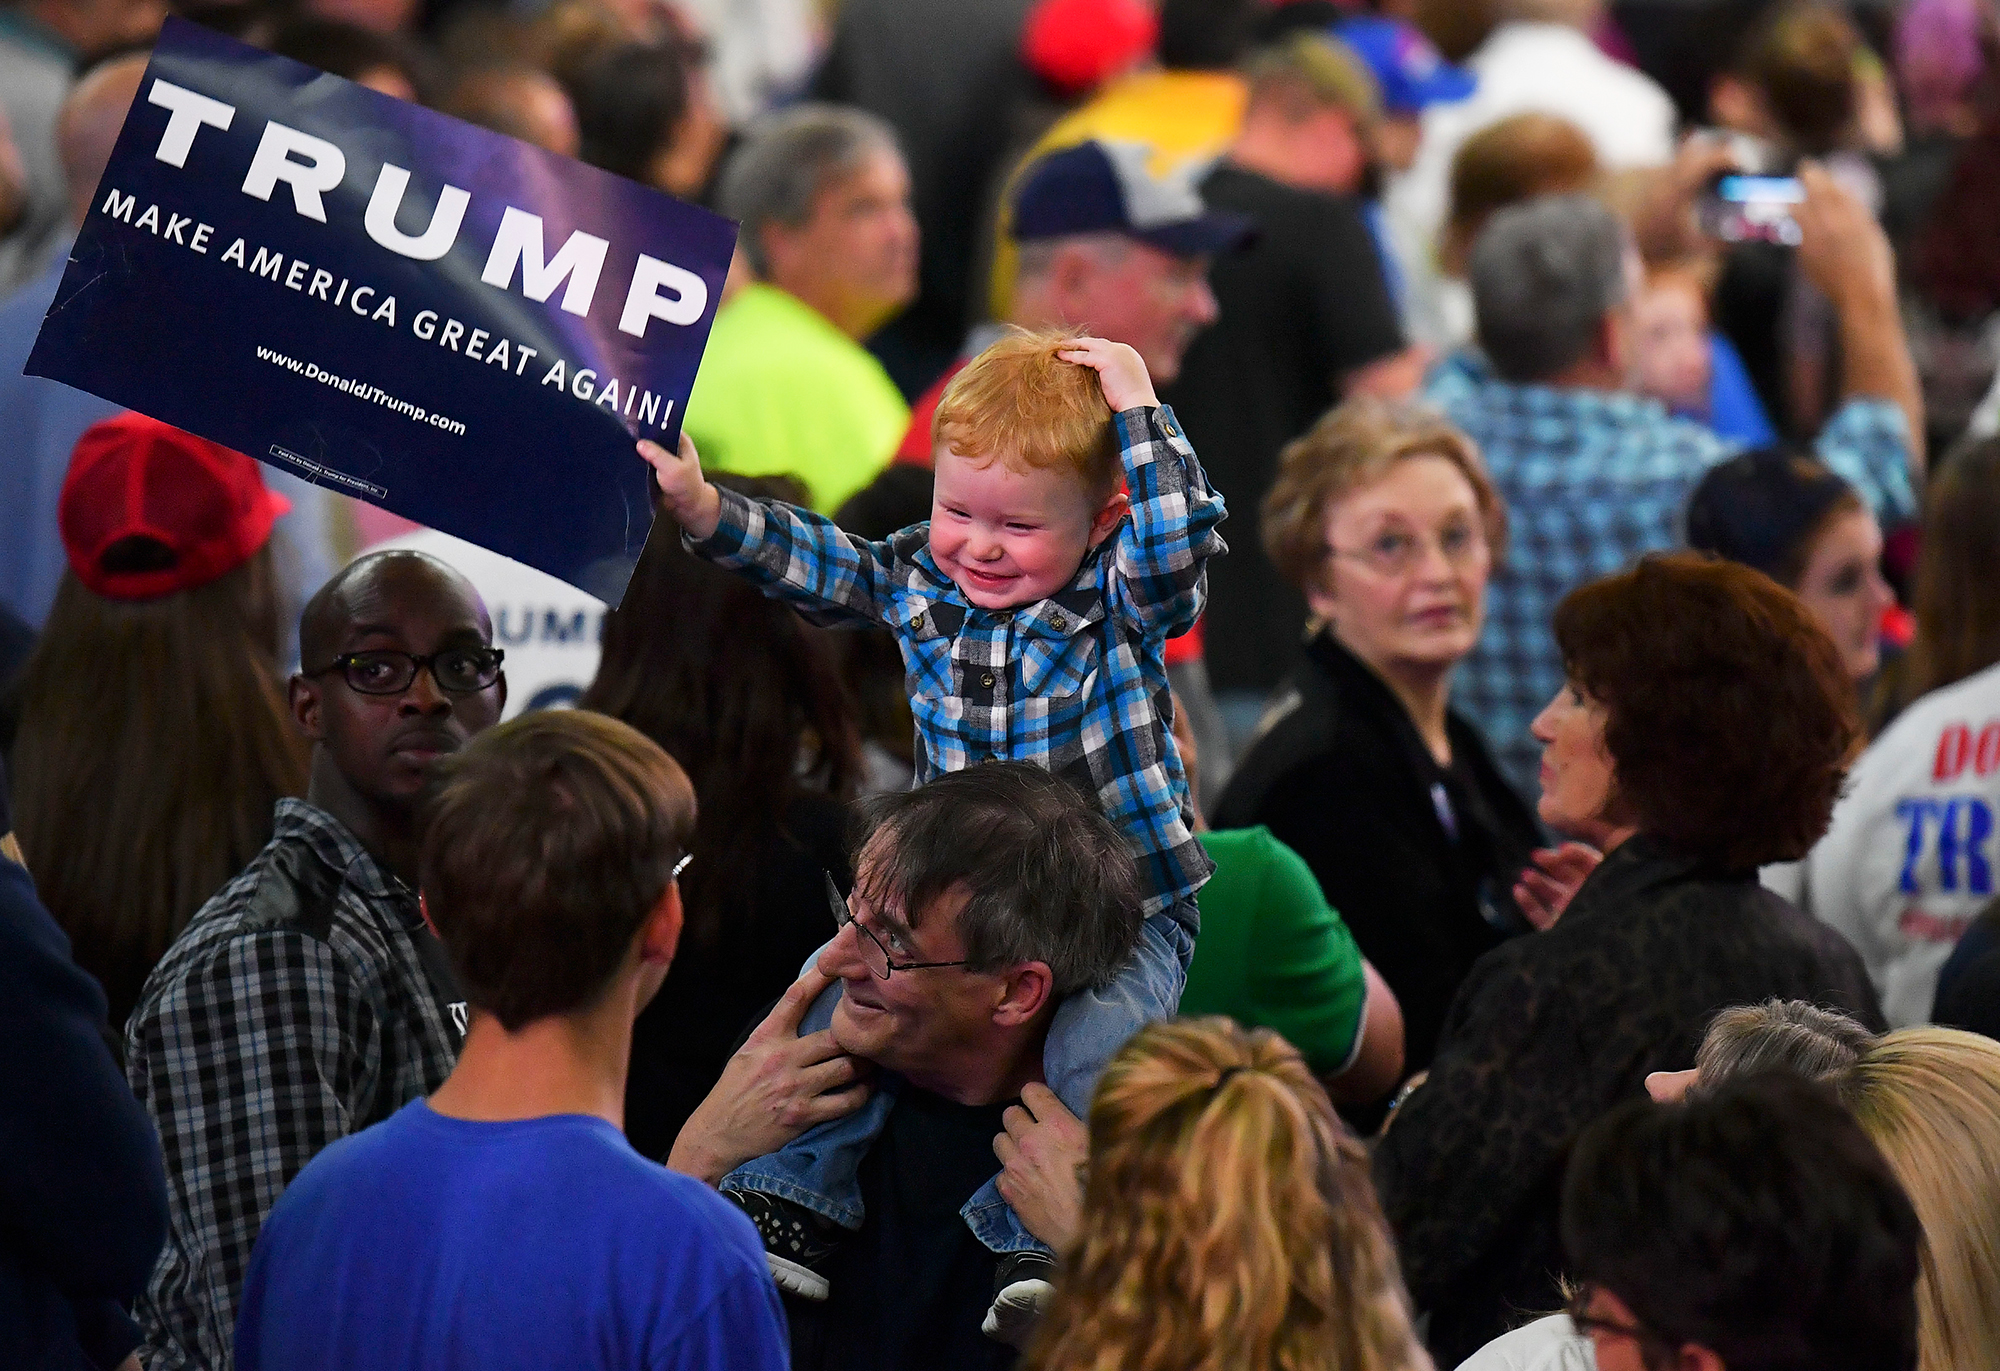 A child waves a Trump sign before Republican presidential candidate Donald Trump addresses his supporters during a rally at on May 5, 2016 in Charleston, W.V.